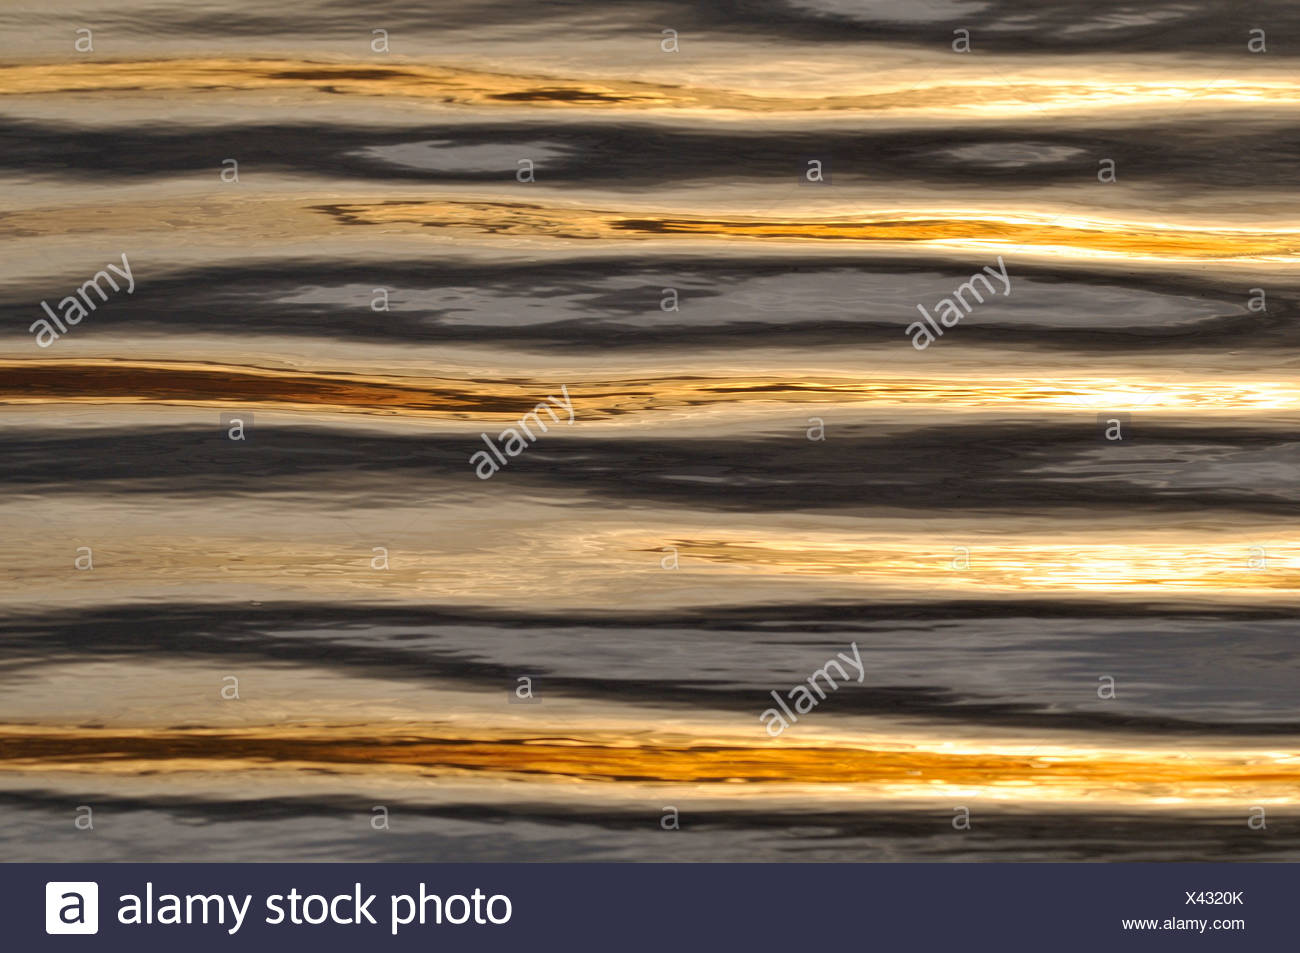 Waves - Stock Image